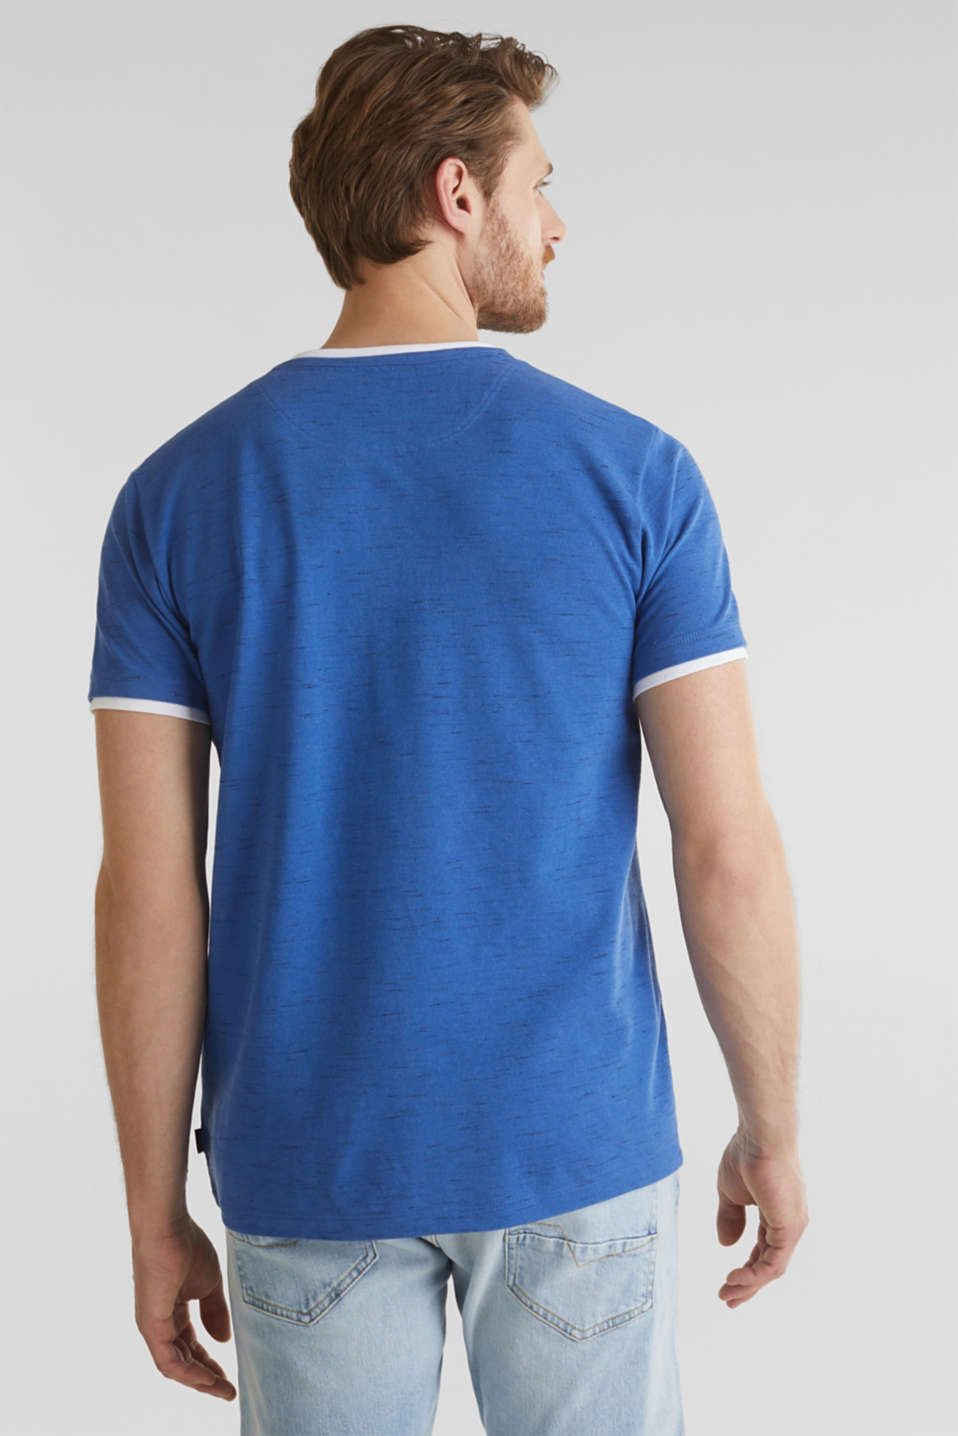 Piqué T-shirt in a layered look, BLUE 5, detail image number 2